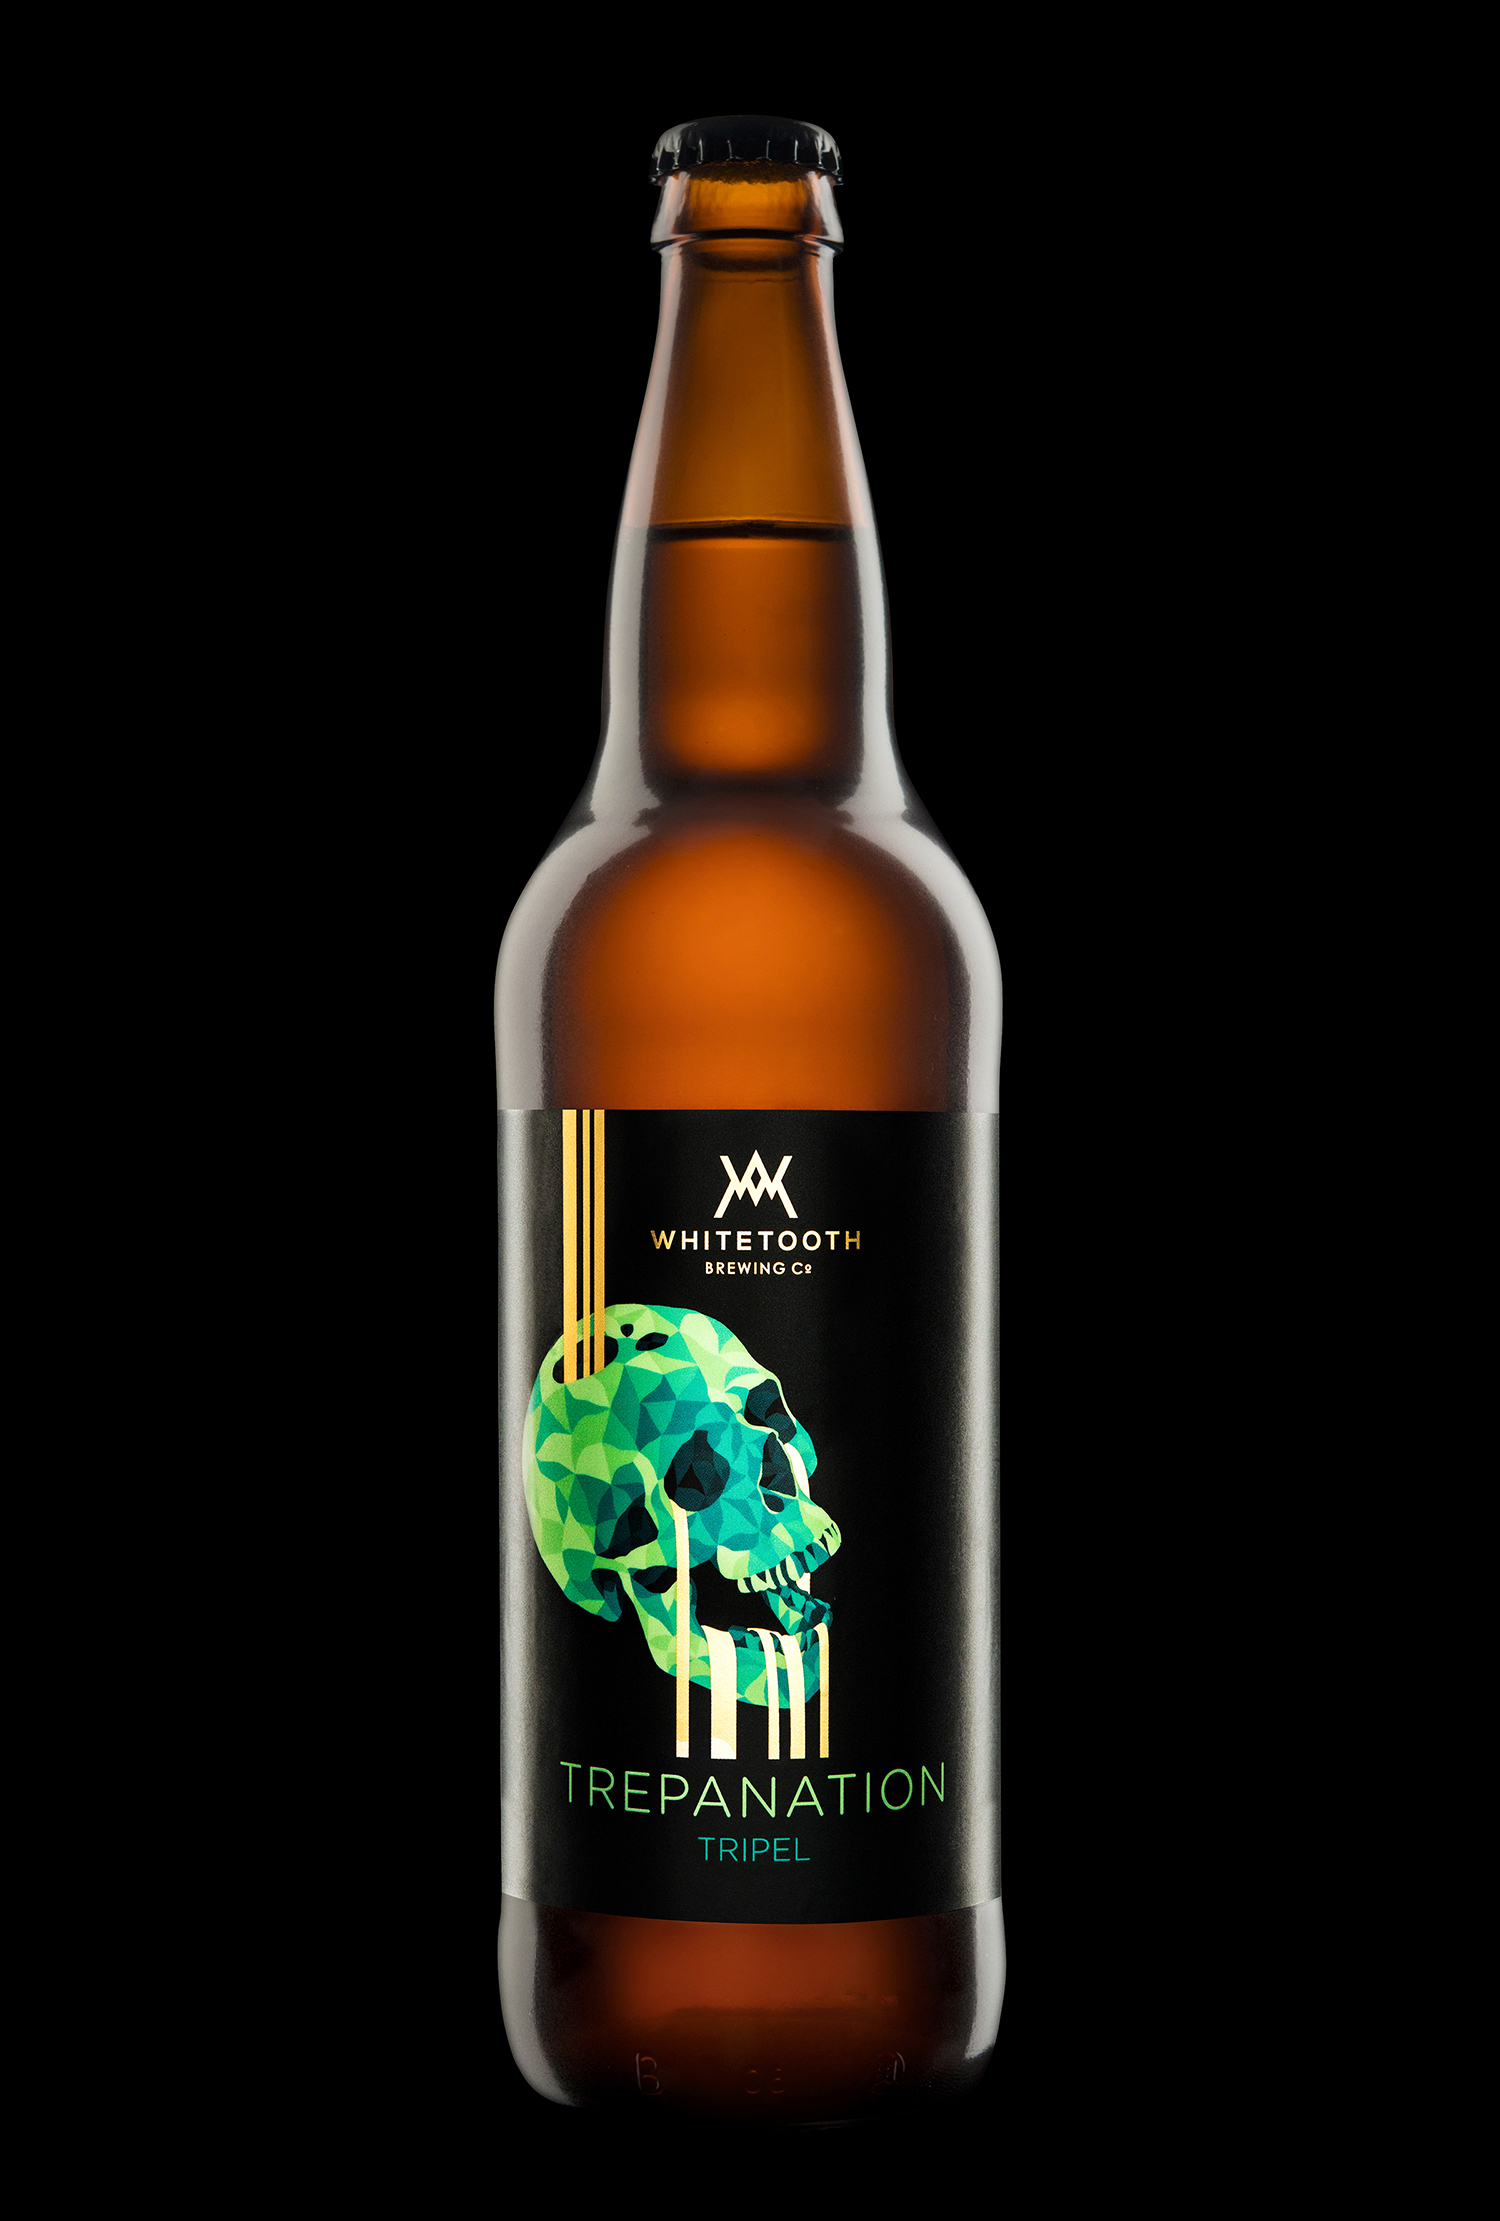 Branding and Packaging Design for Whitetooth Brewing's Trepanation Tripel